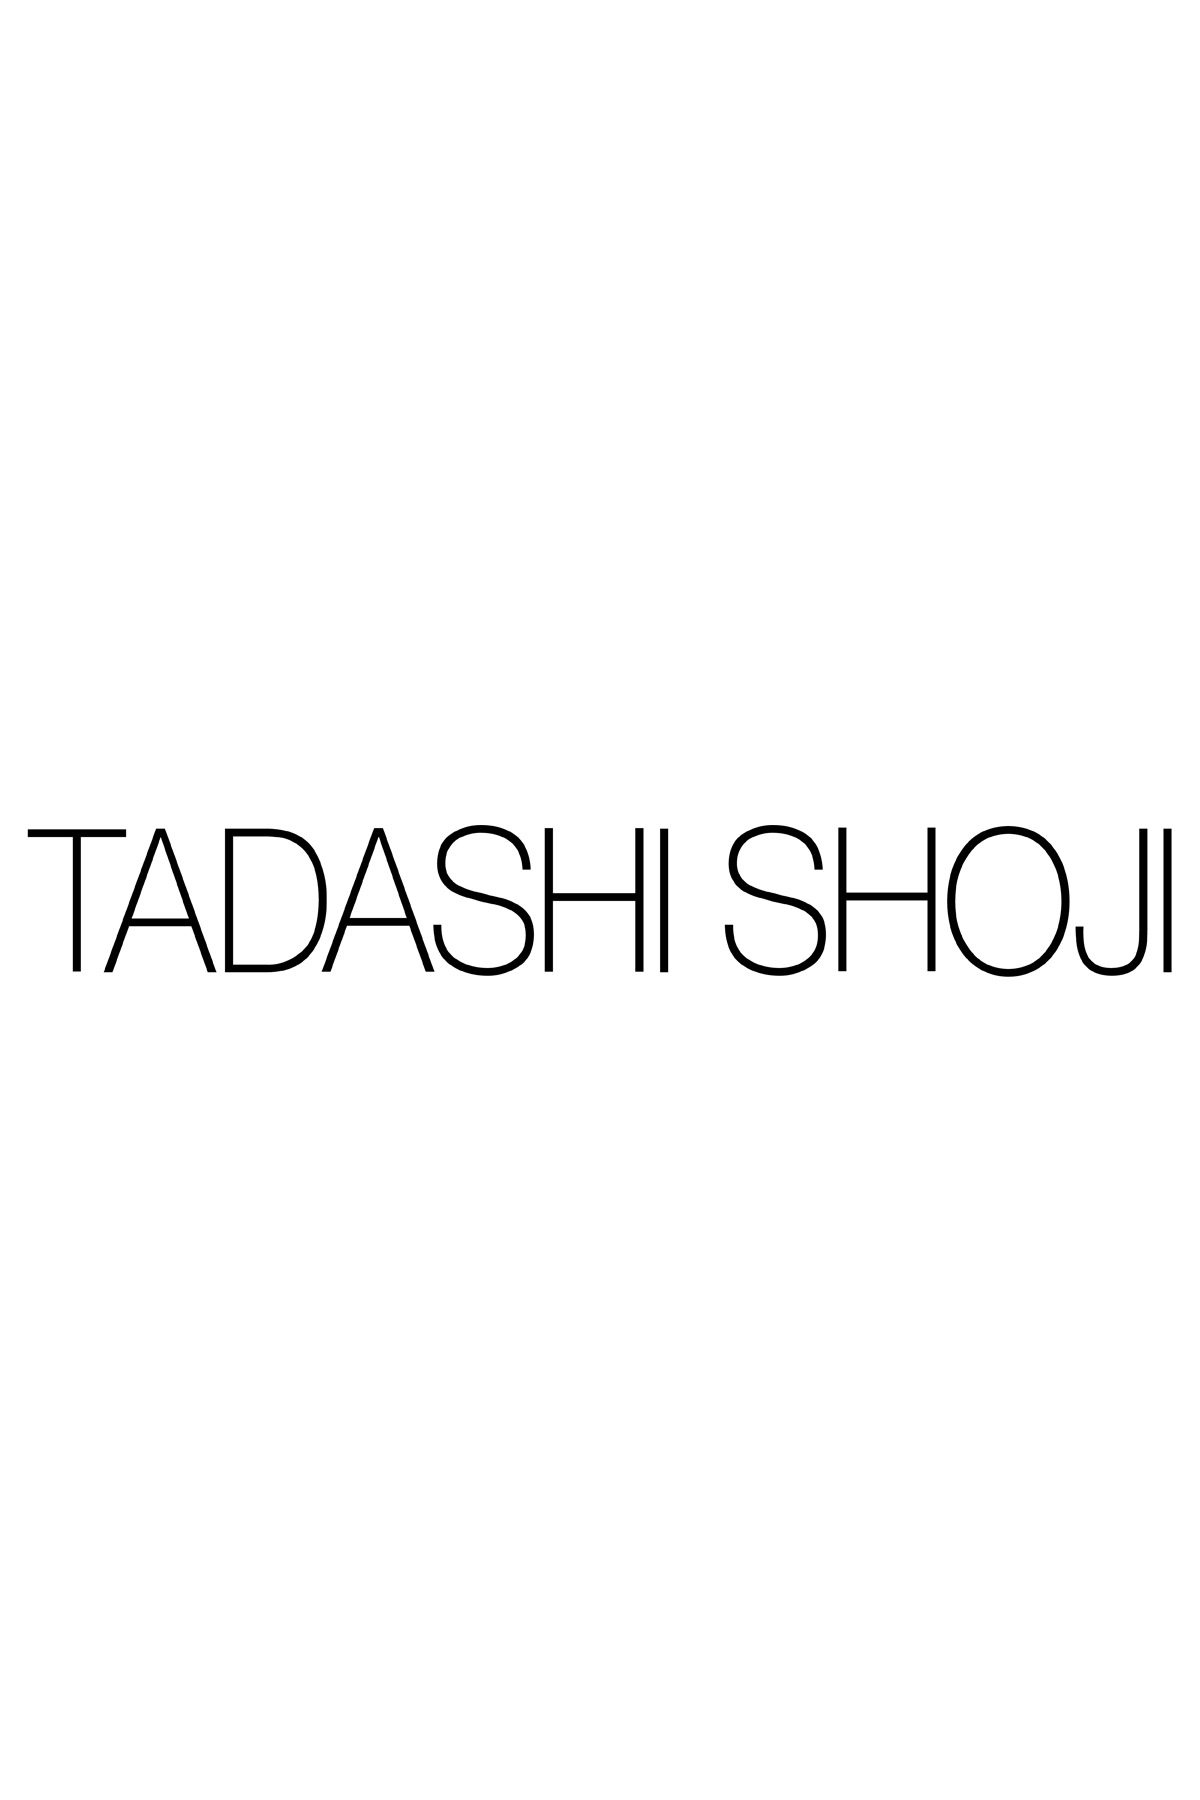 Tadashi Shoji Plus Size Detail - Corded Embroidery on Tulle Cap Sleeve Gown